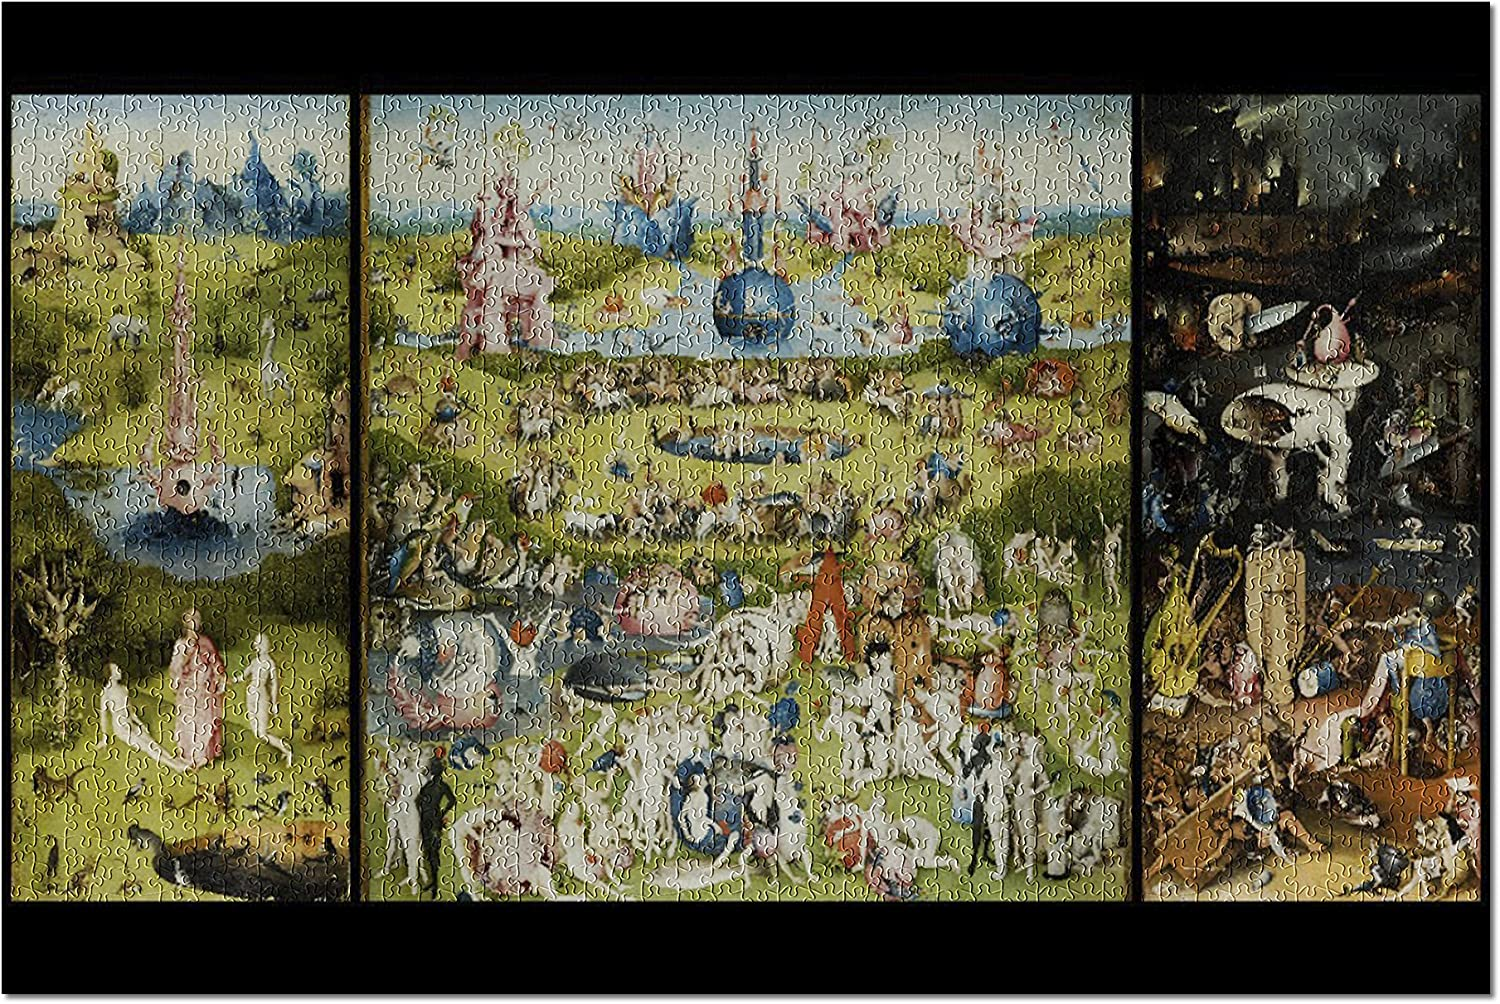 The Garden of Earthly Delights - (Artist: Hieronymus Bosch c. 1480) - Masterpiece Classic (20x30 Premium 1000 Piece Jigsaw Puzzle, Made in USA!)